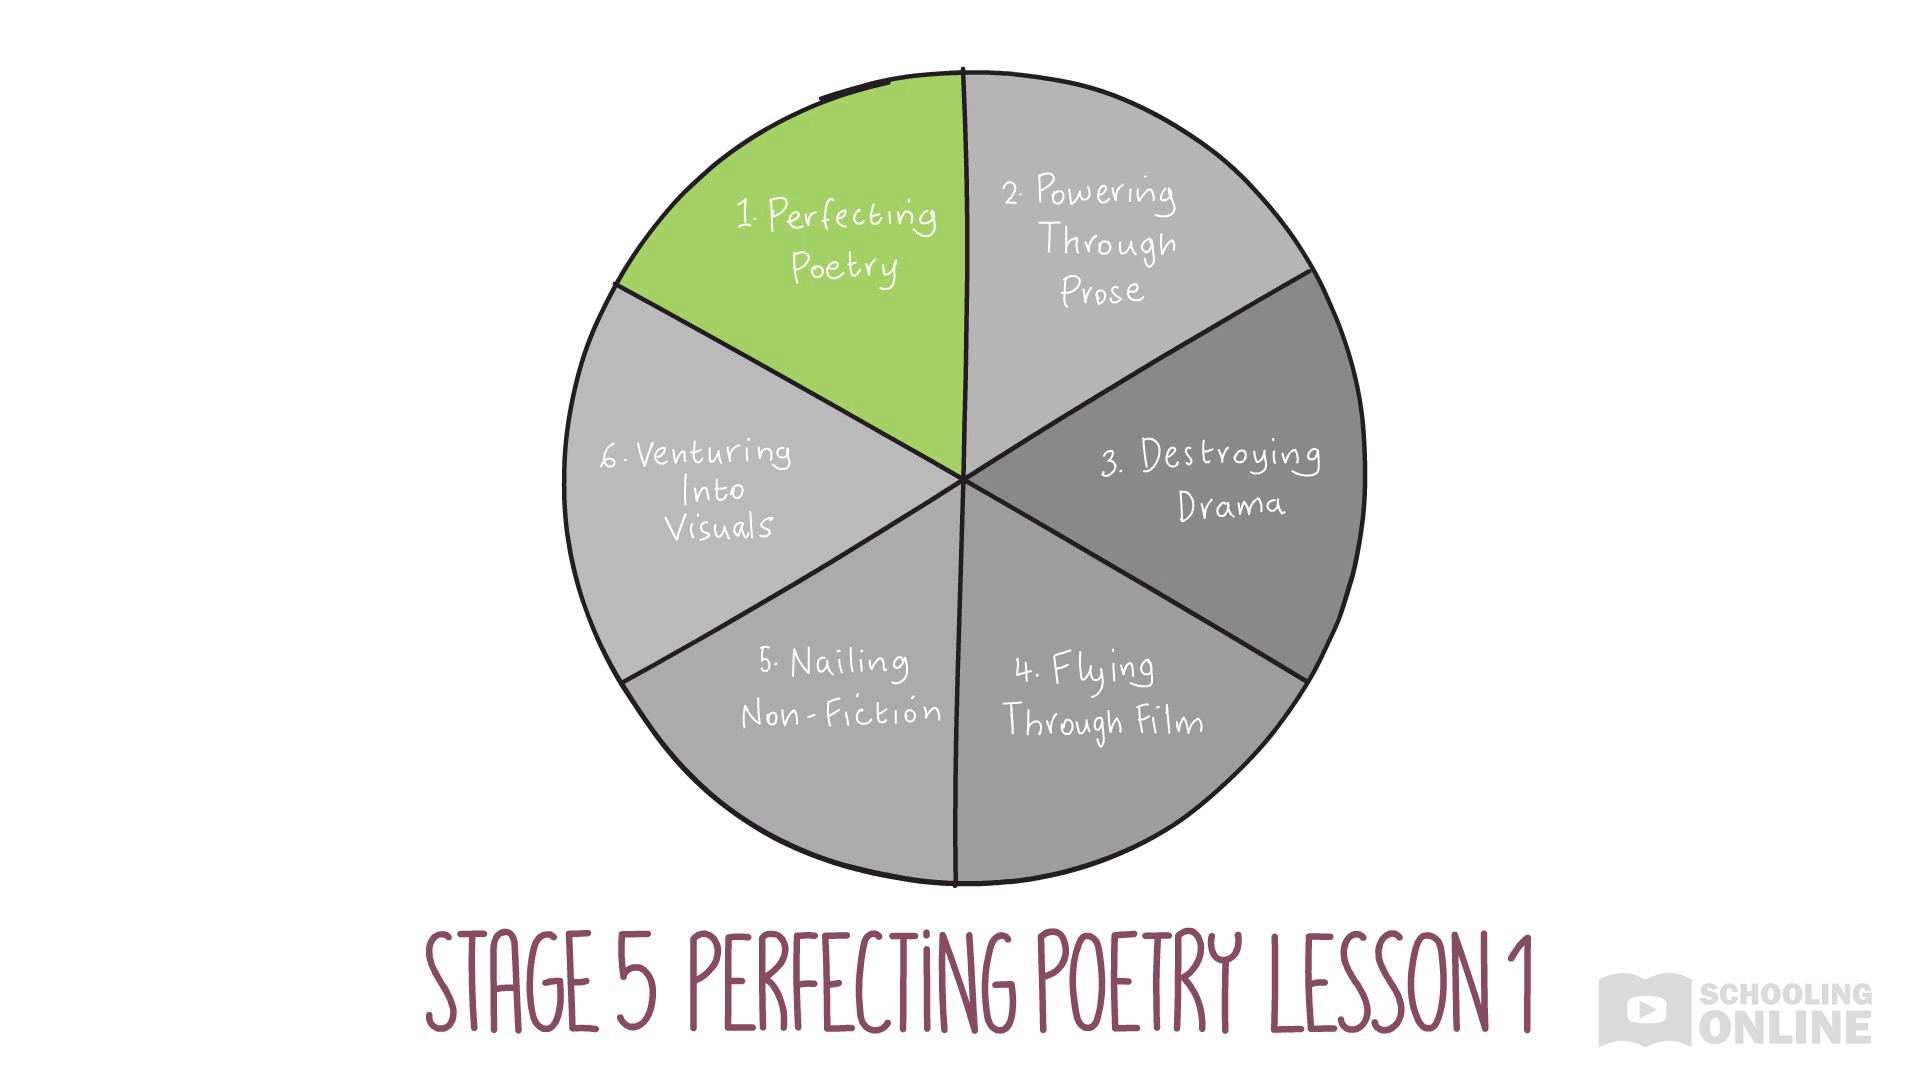 English Essentials Stage 5 - Perfecting Poetry Lesson 1